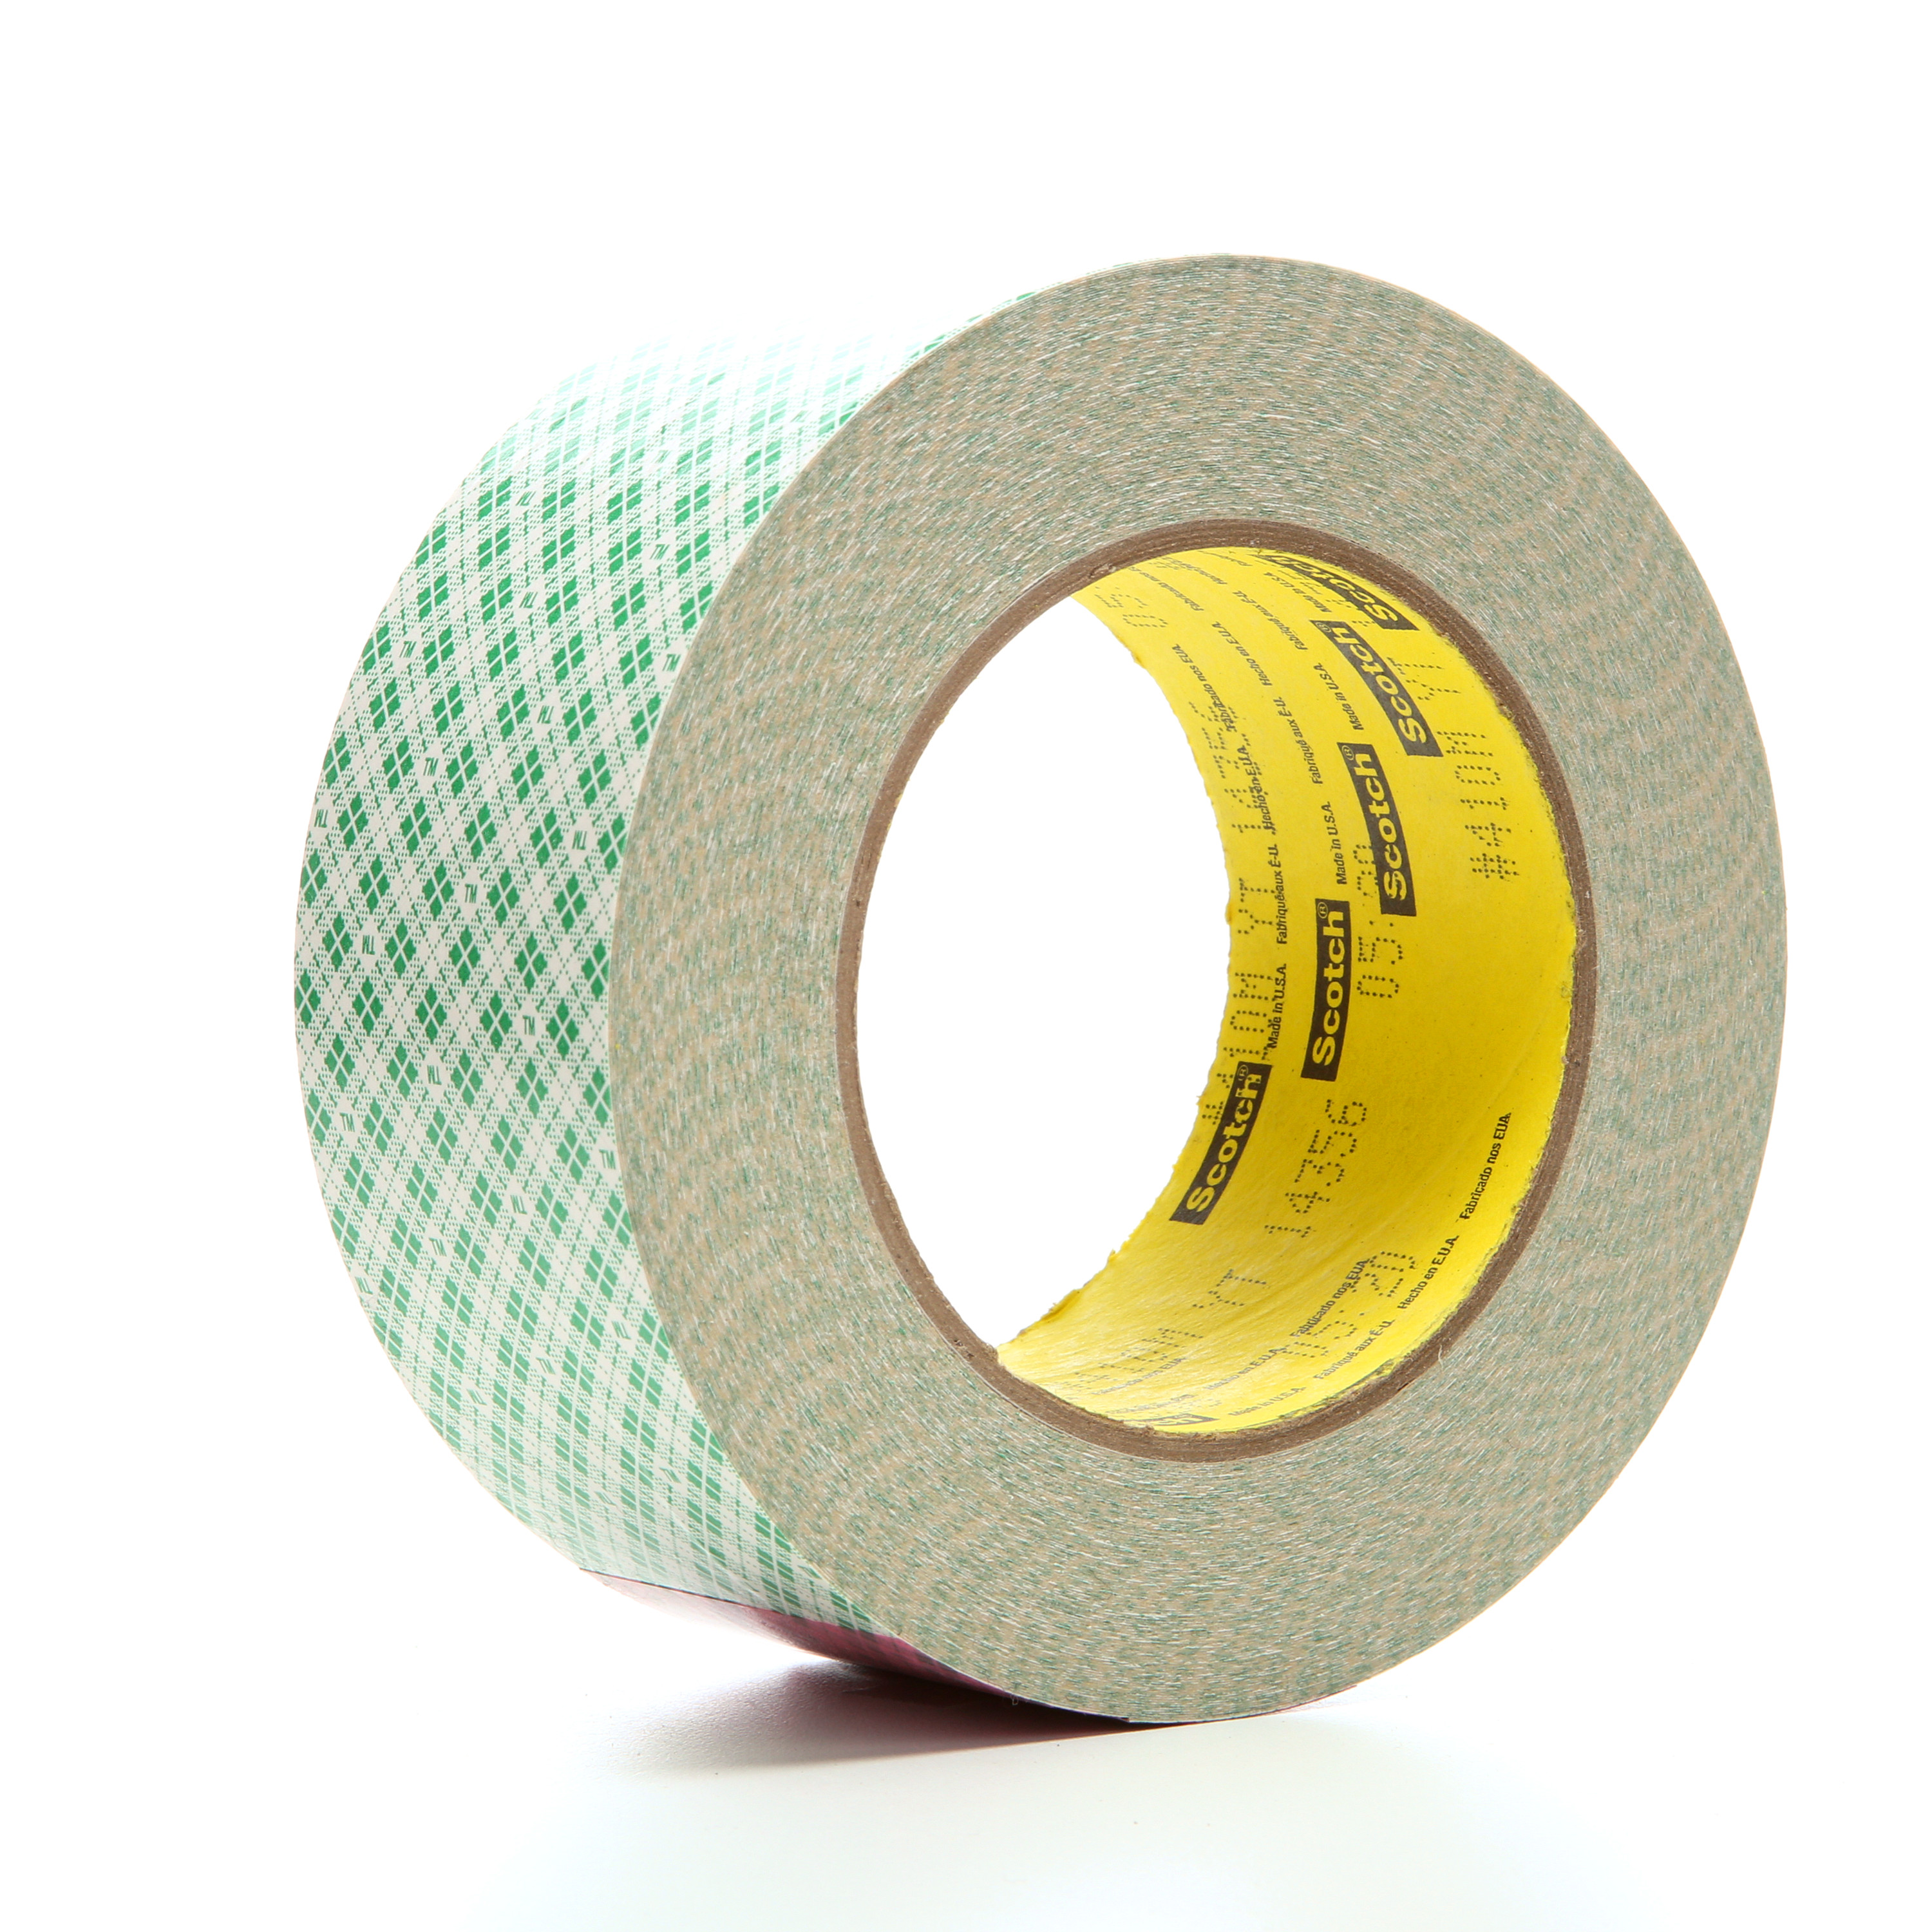 3M™ Double Coated Paper Tape 410M, Natural, 2 in x 36 yd, 5 mil, 24 rolls per case